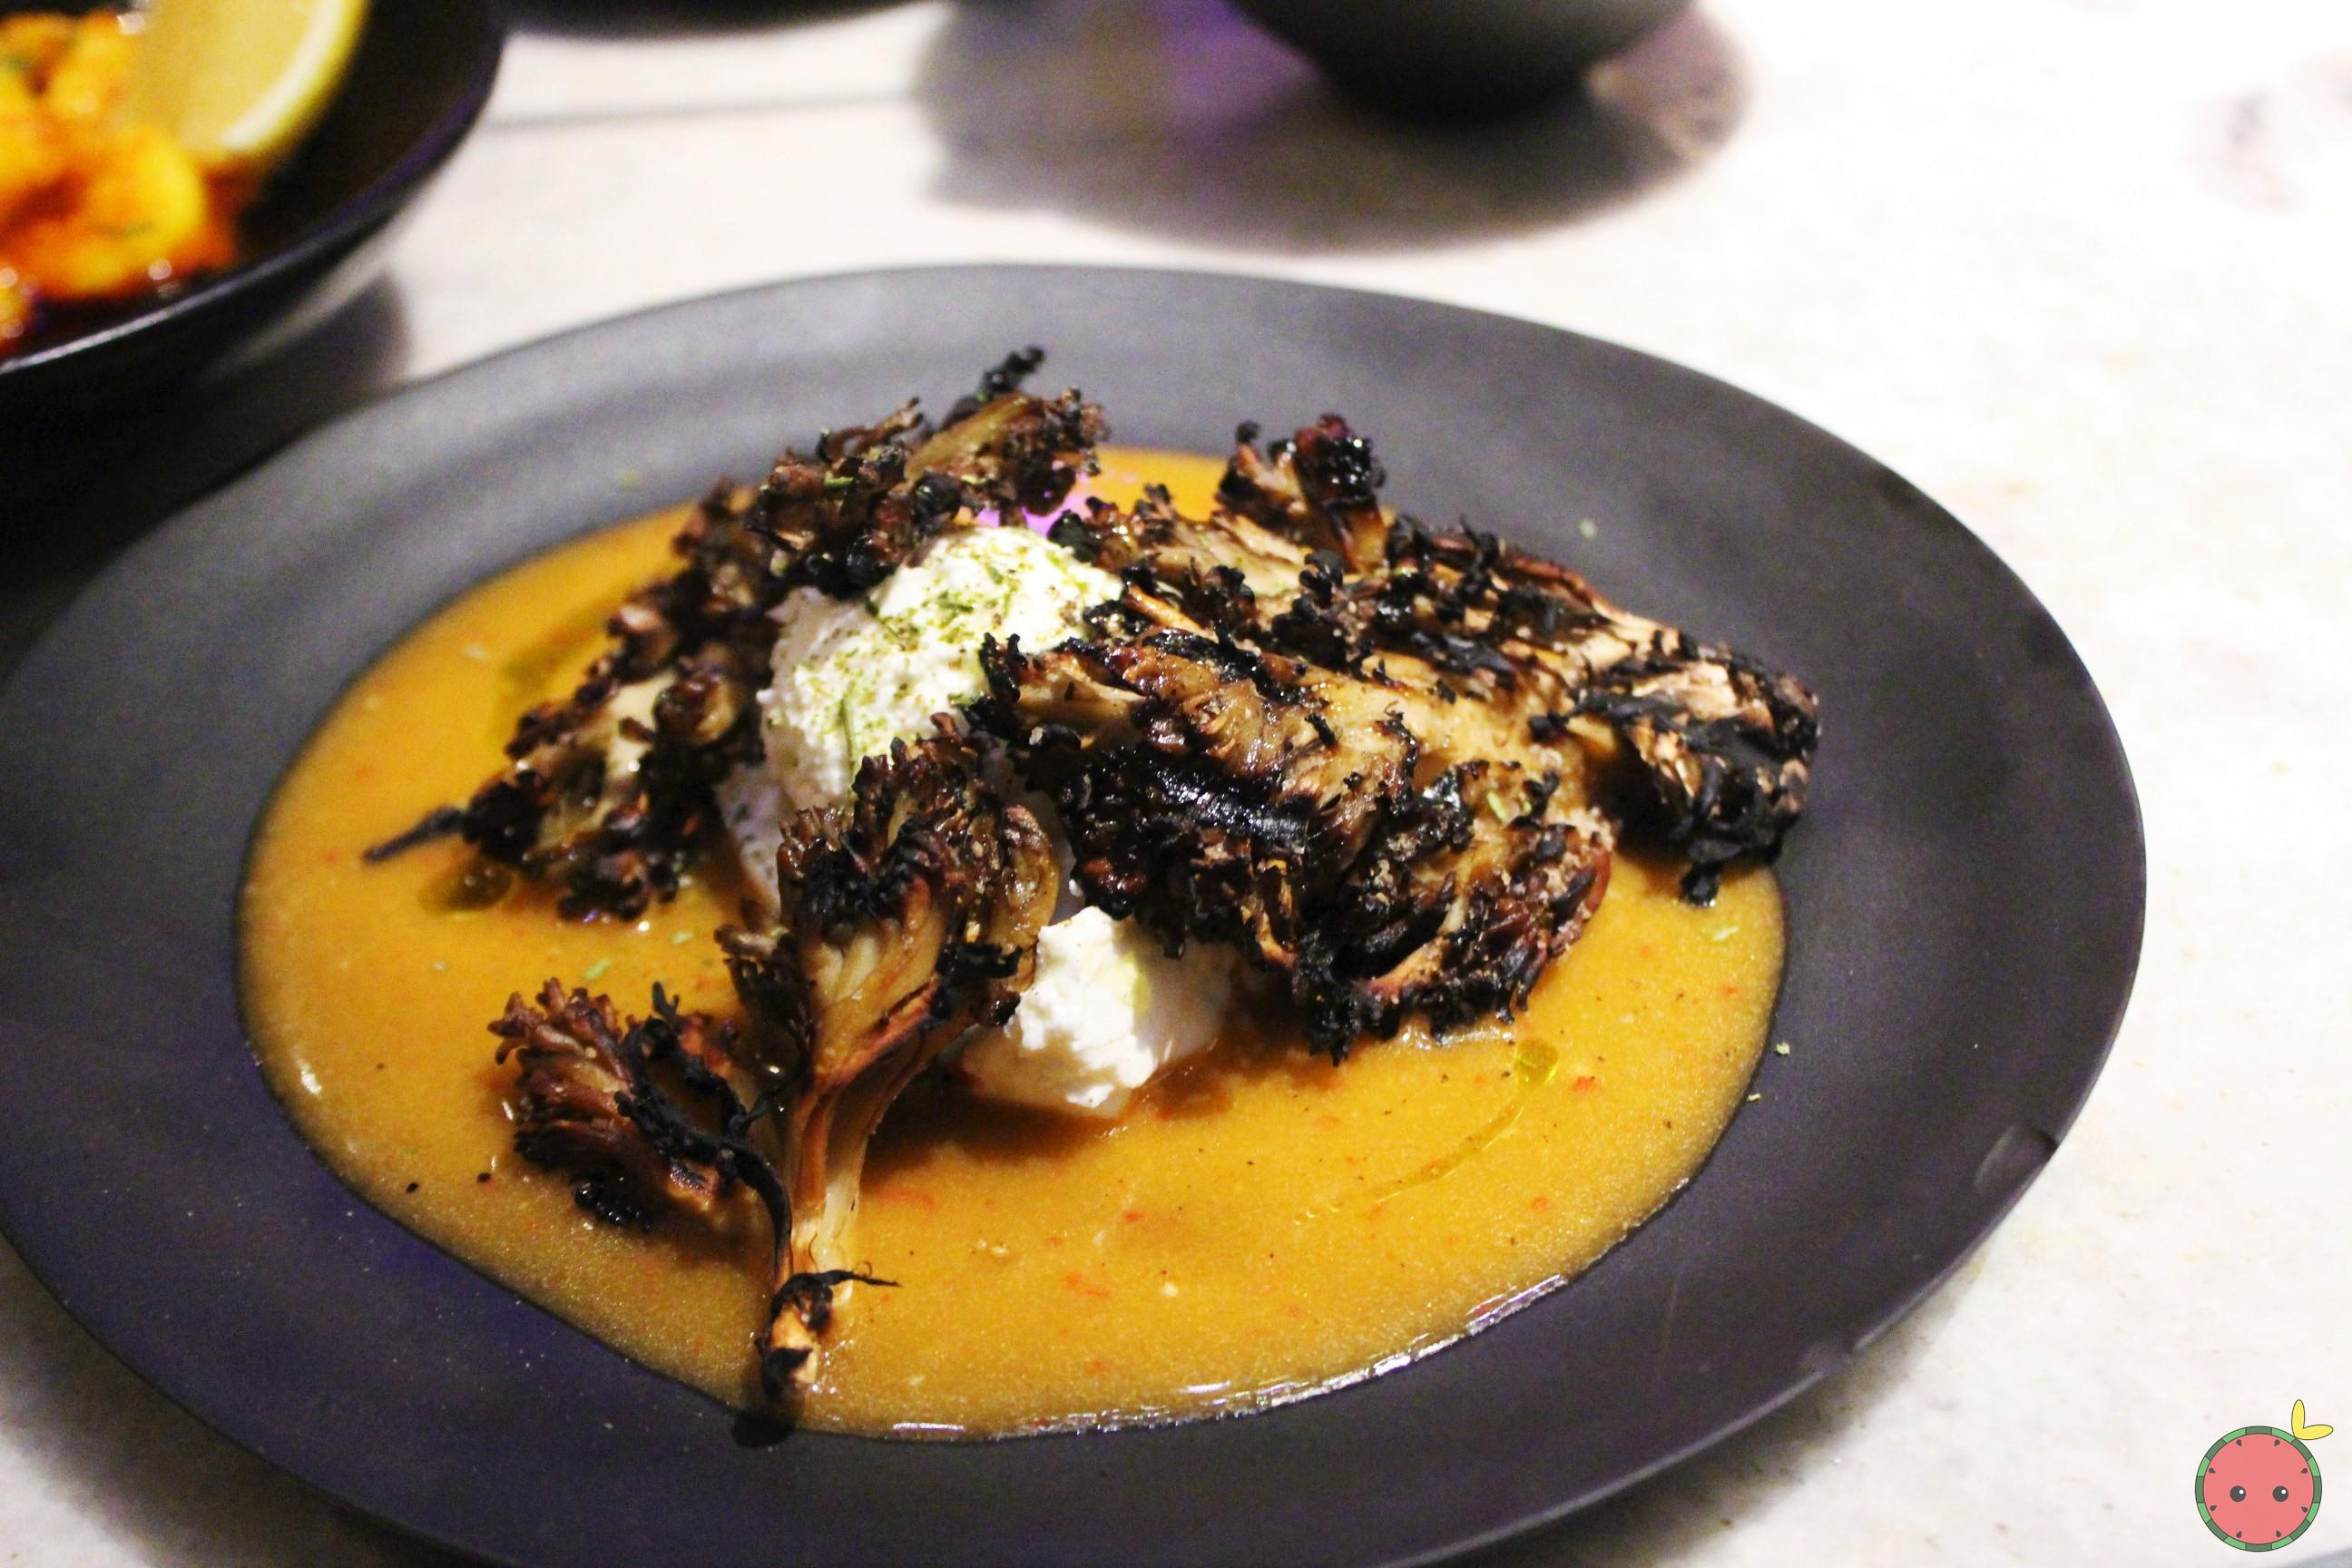 Maitake mushrooms with goat cheese, fresno pepper vinaigrette